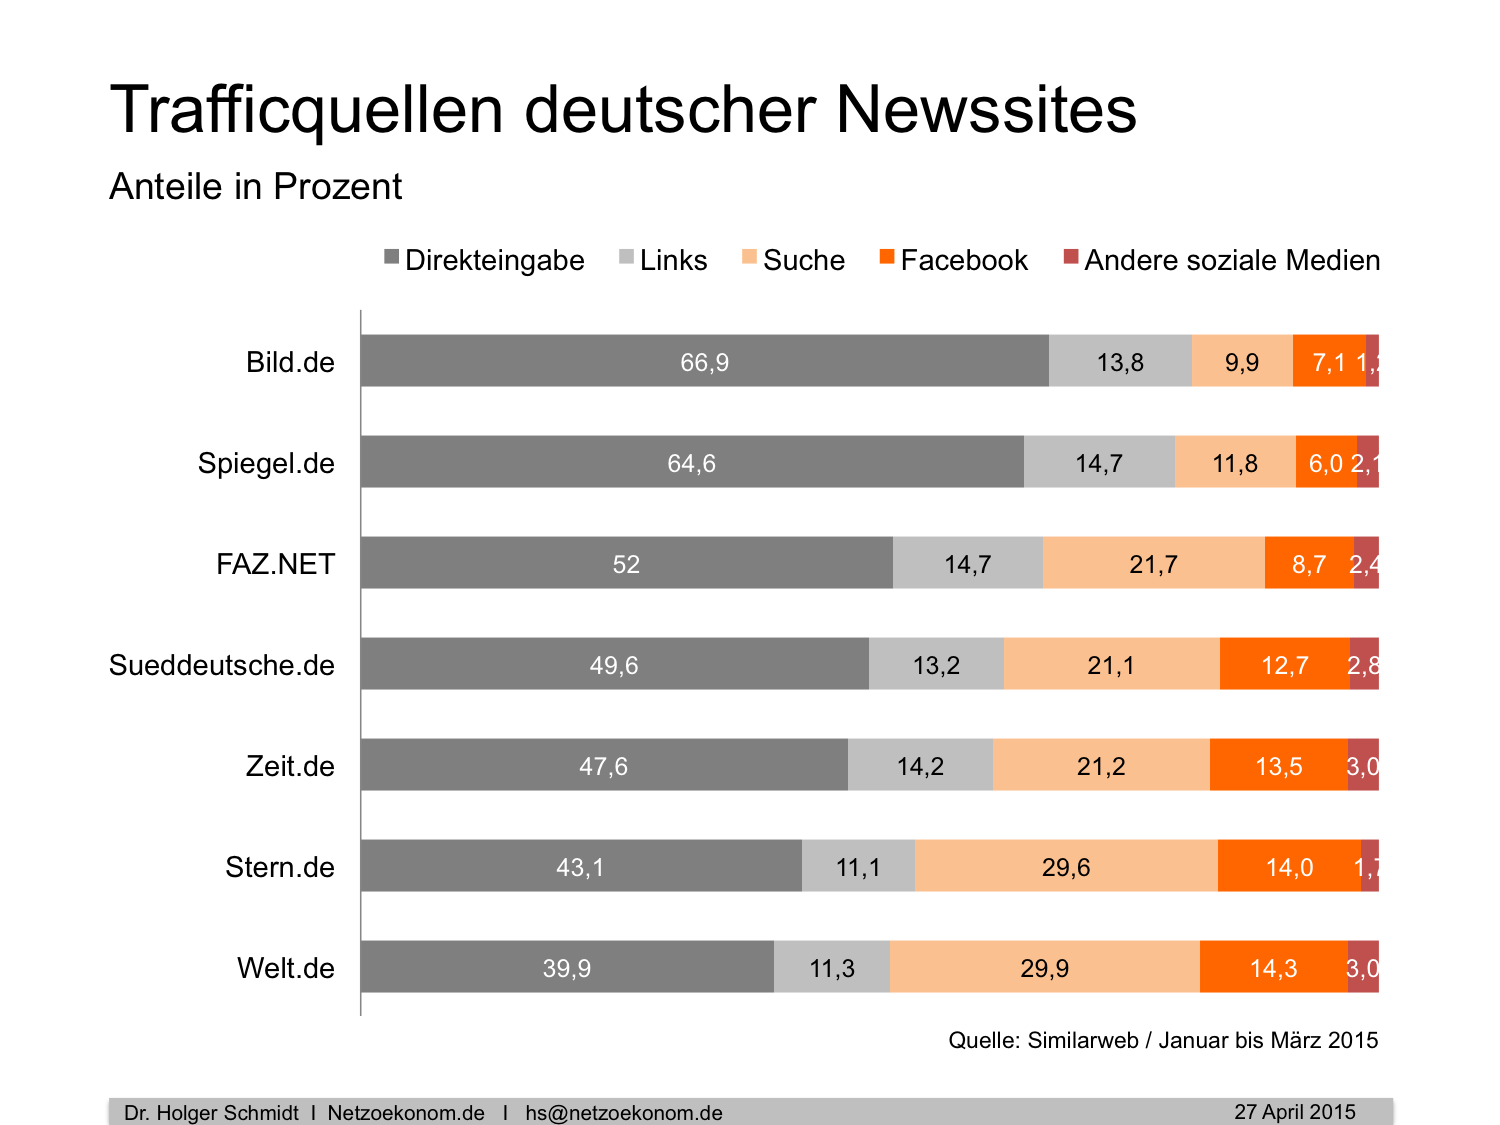 Trafficquellen deutscher Newssites